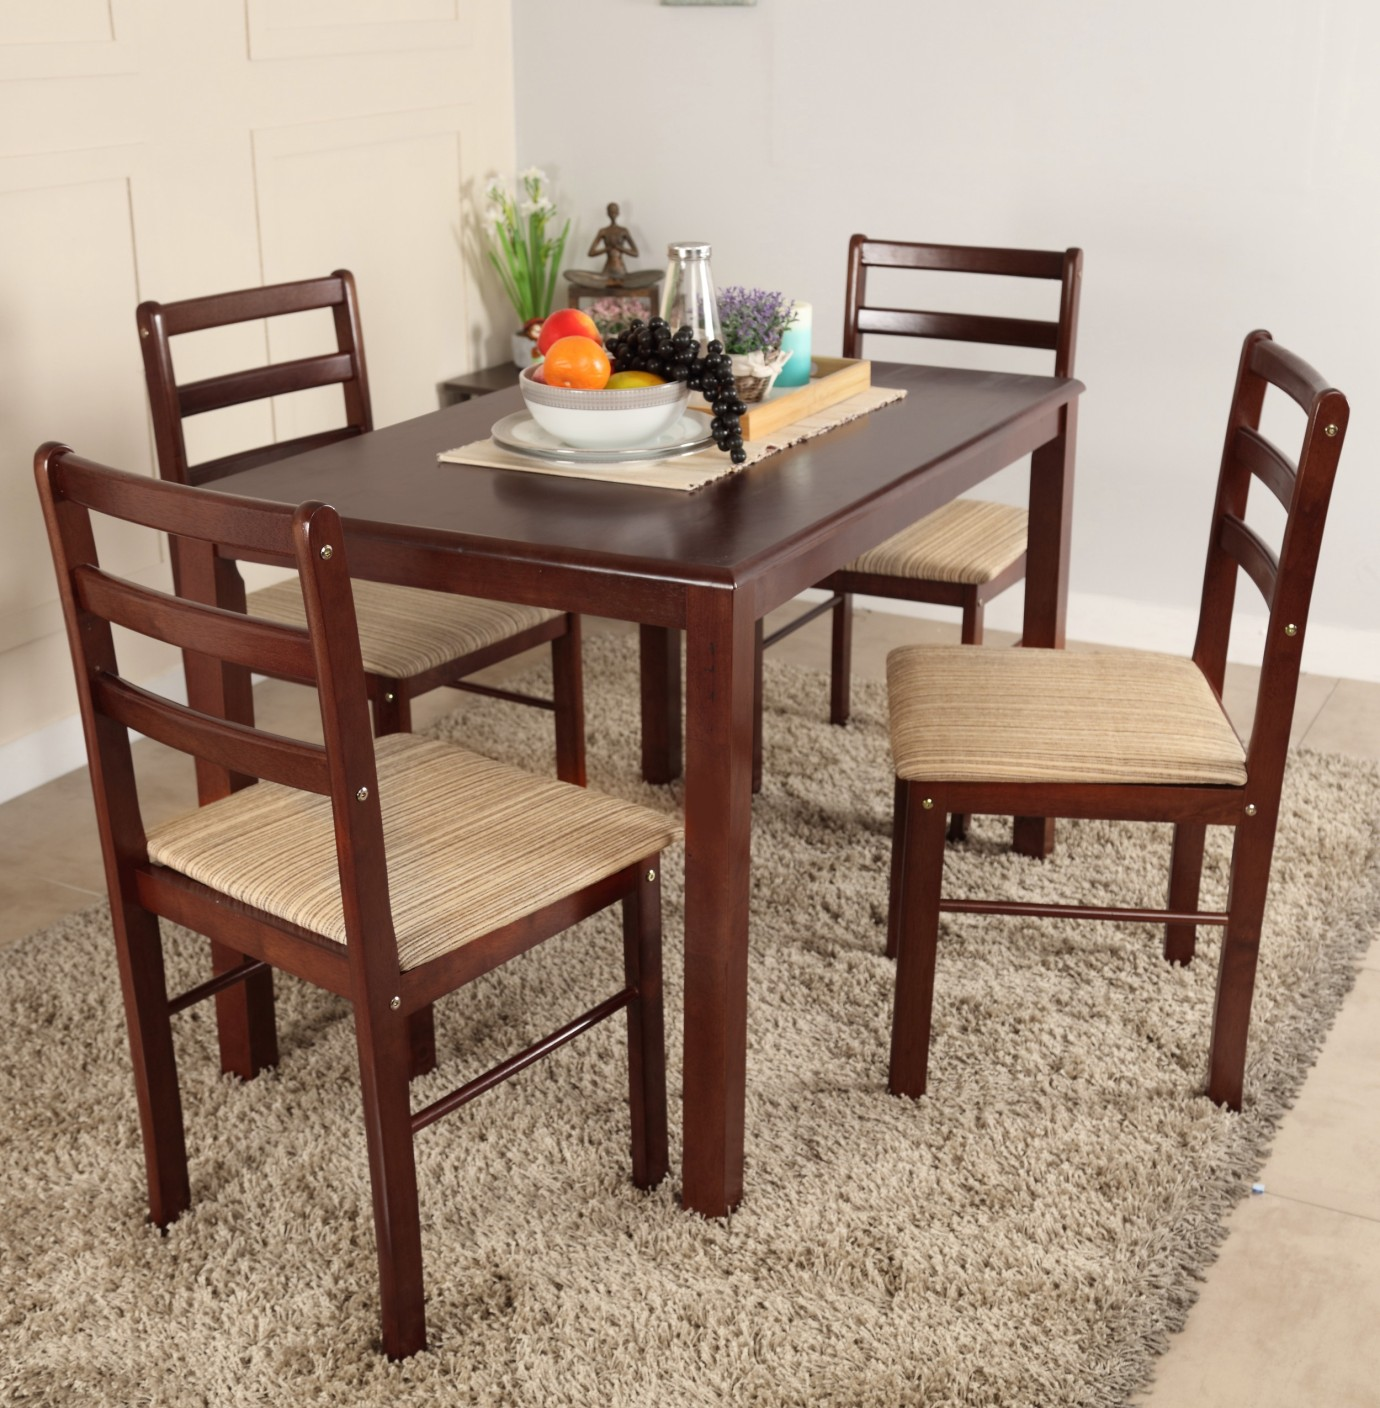 Woodness solid wood 4 seater dining set price in india for Dining room table 4 seater